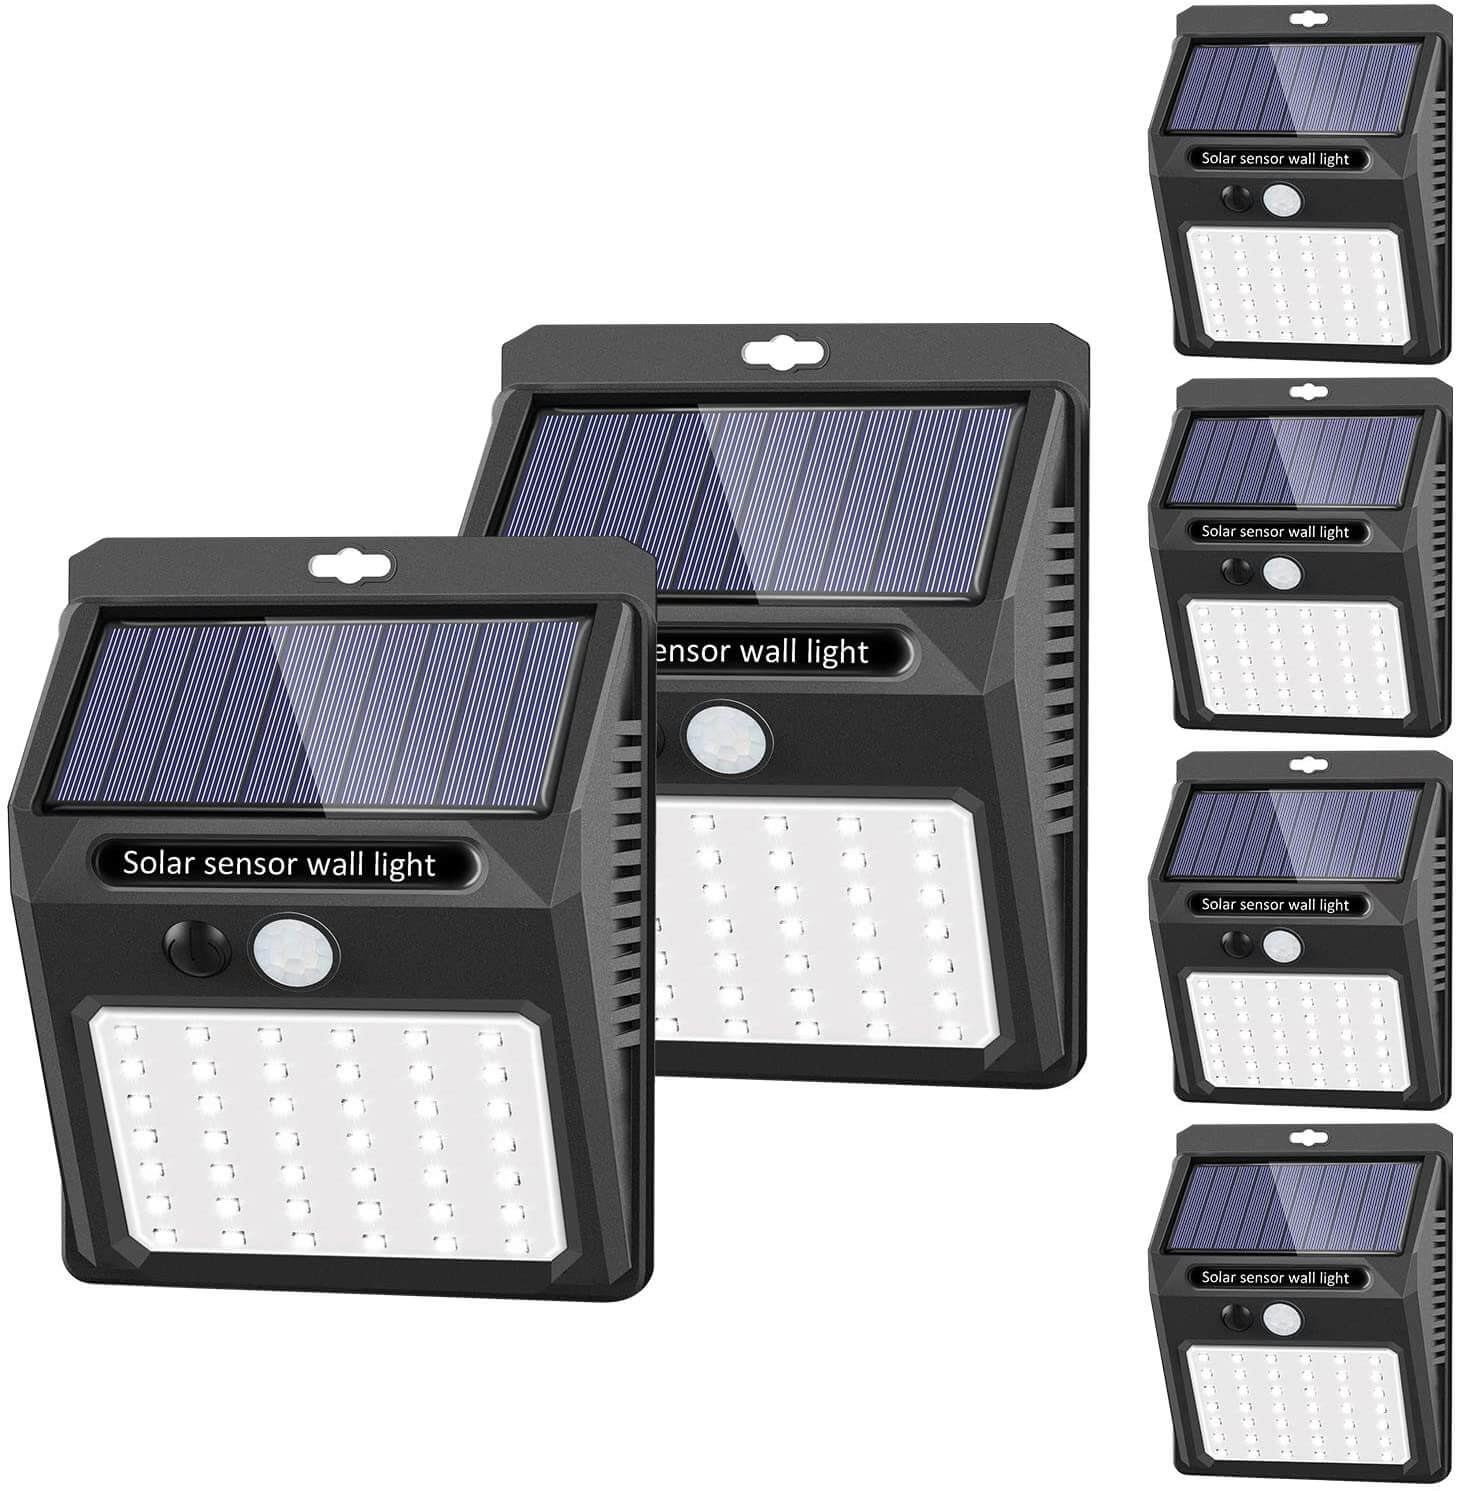 The 10 Best Solar Powered Motion Sensor Security Lights Reviews And Buying Guide